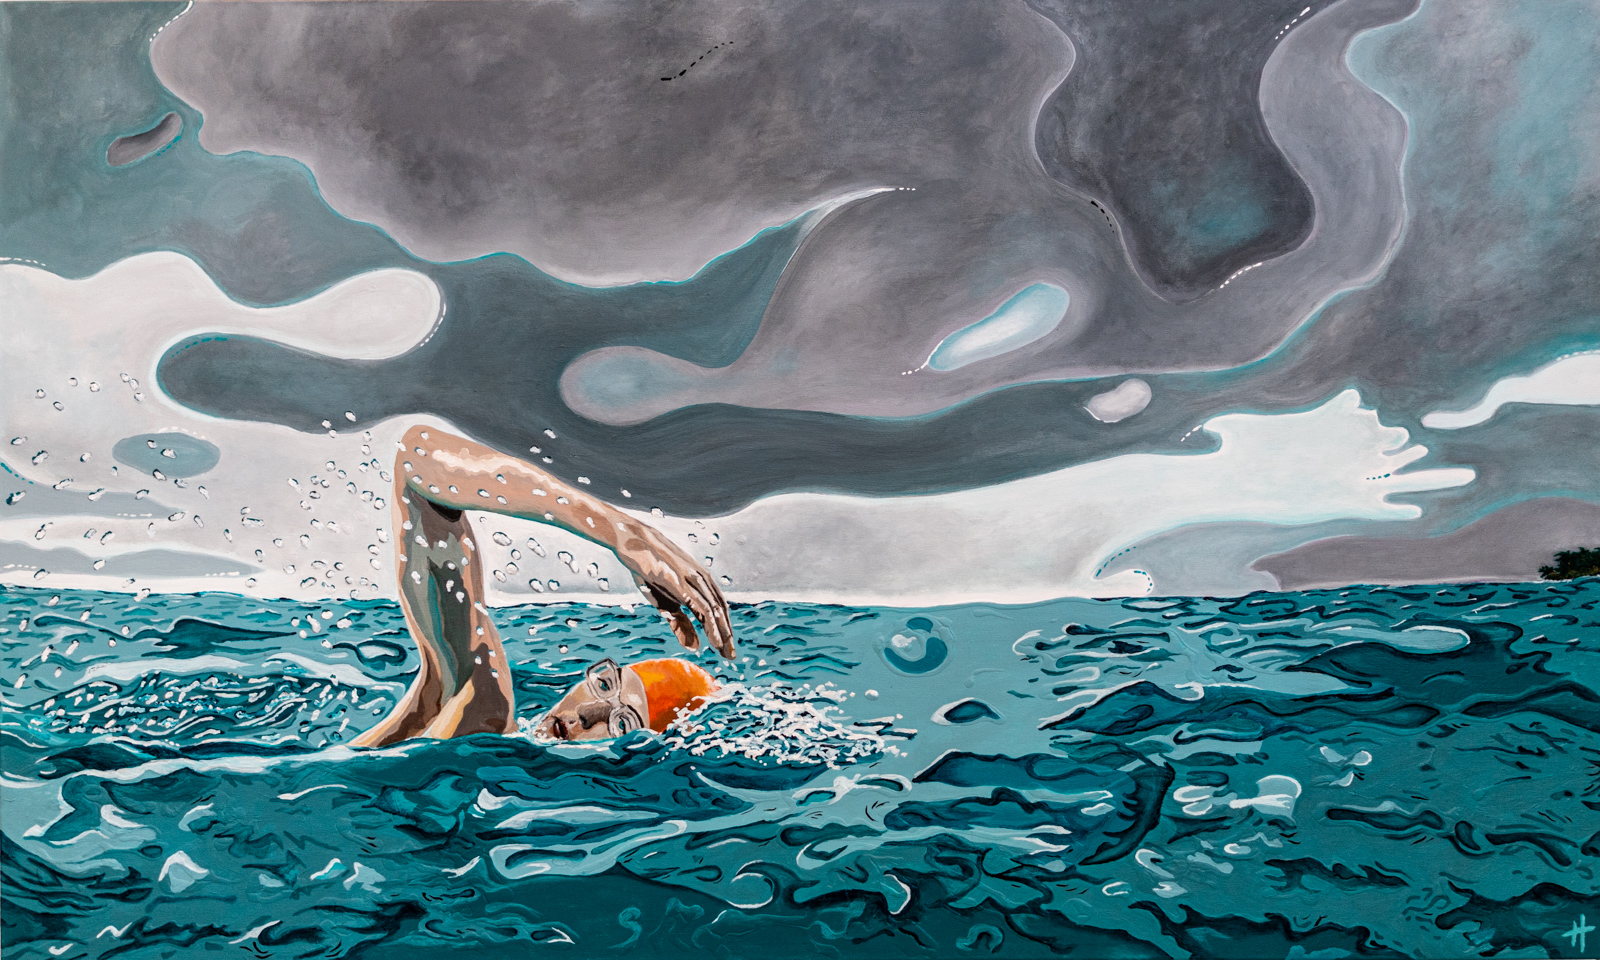 Heather Perry's underwater painting of the swimmer in a storm.